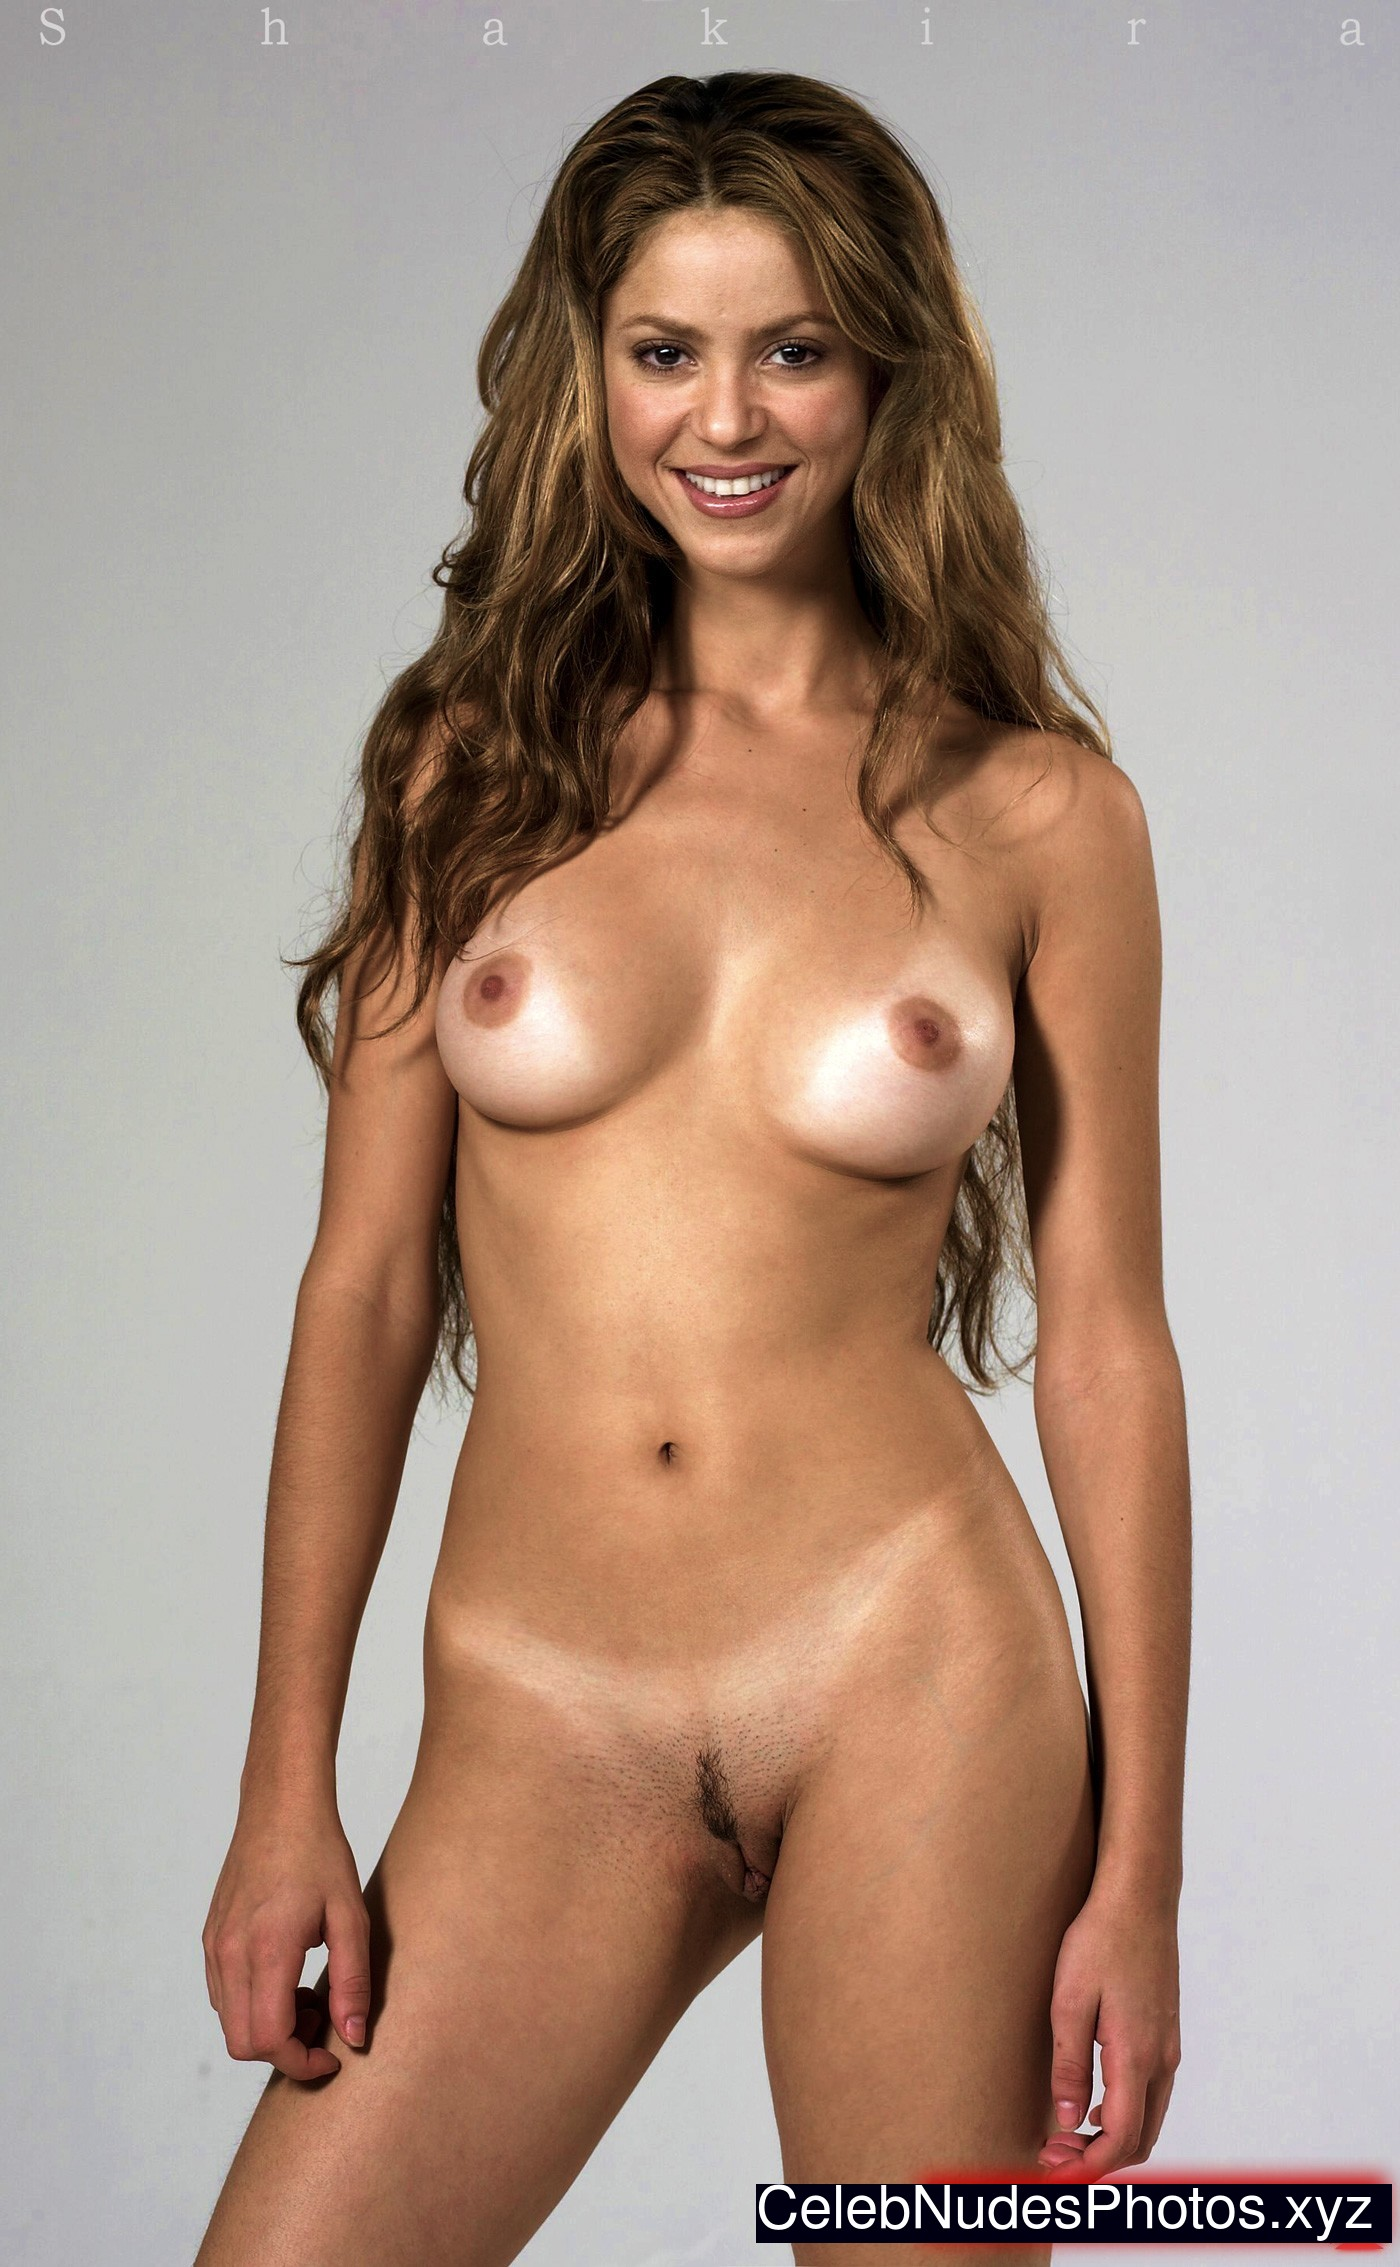 nude of s celebrity pics hot